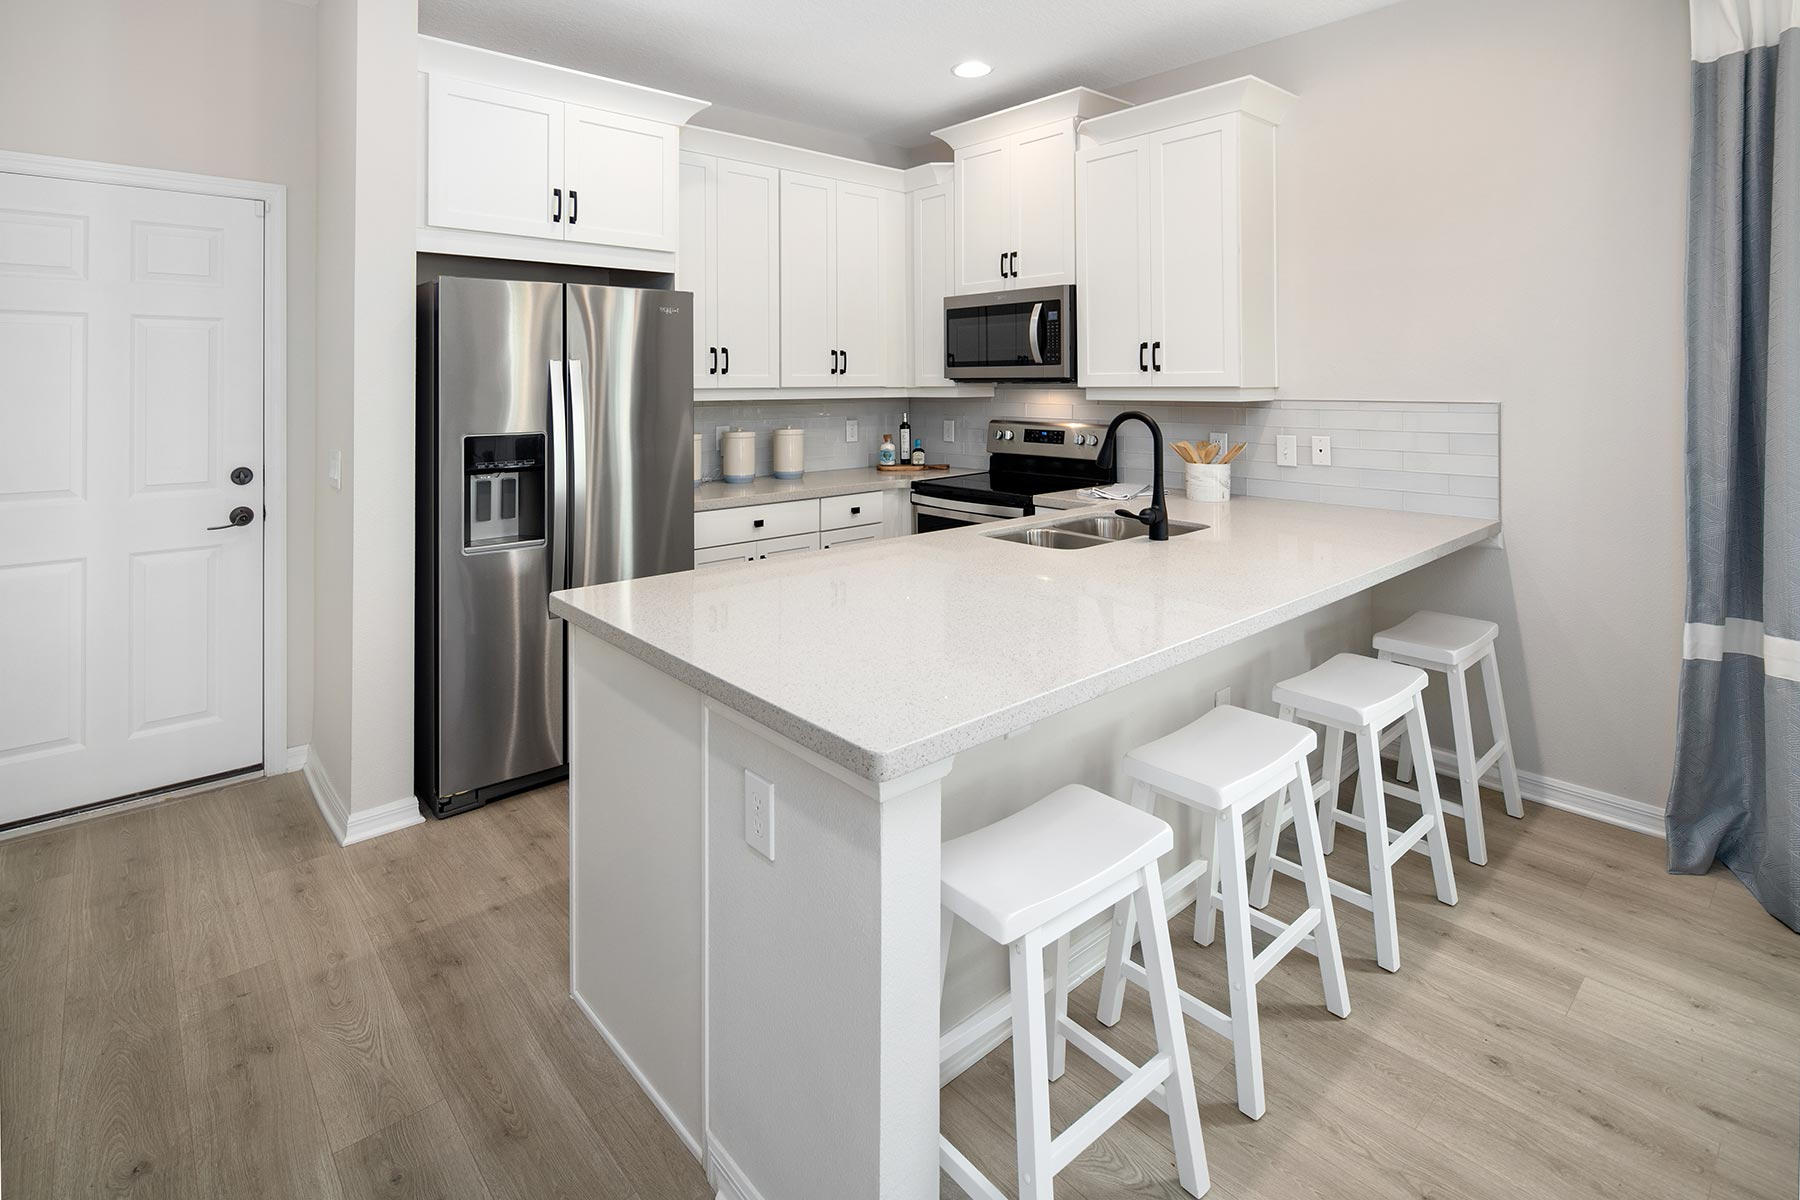 Camilla III Plan Kitchen at Waterbrooke in Clermont Florida by Mattamy Homes